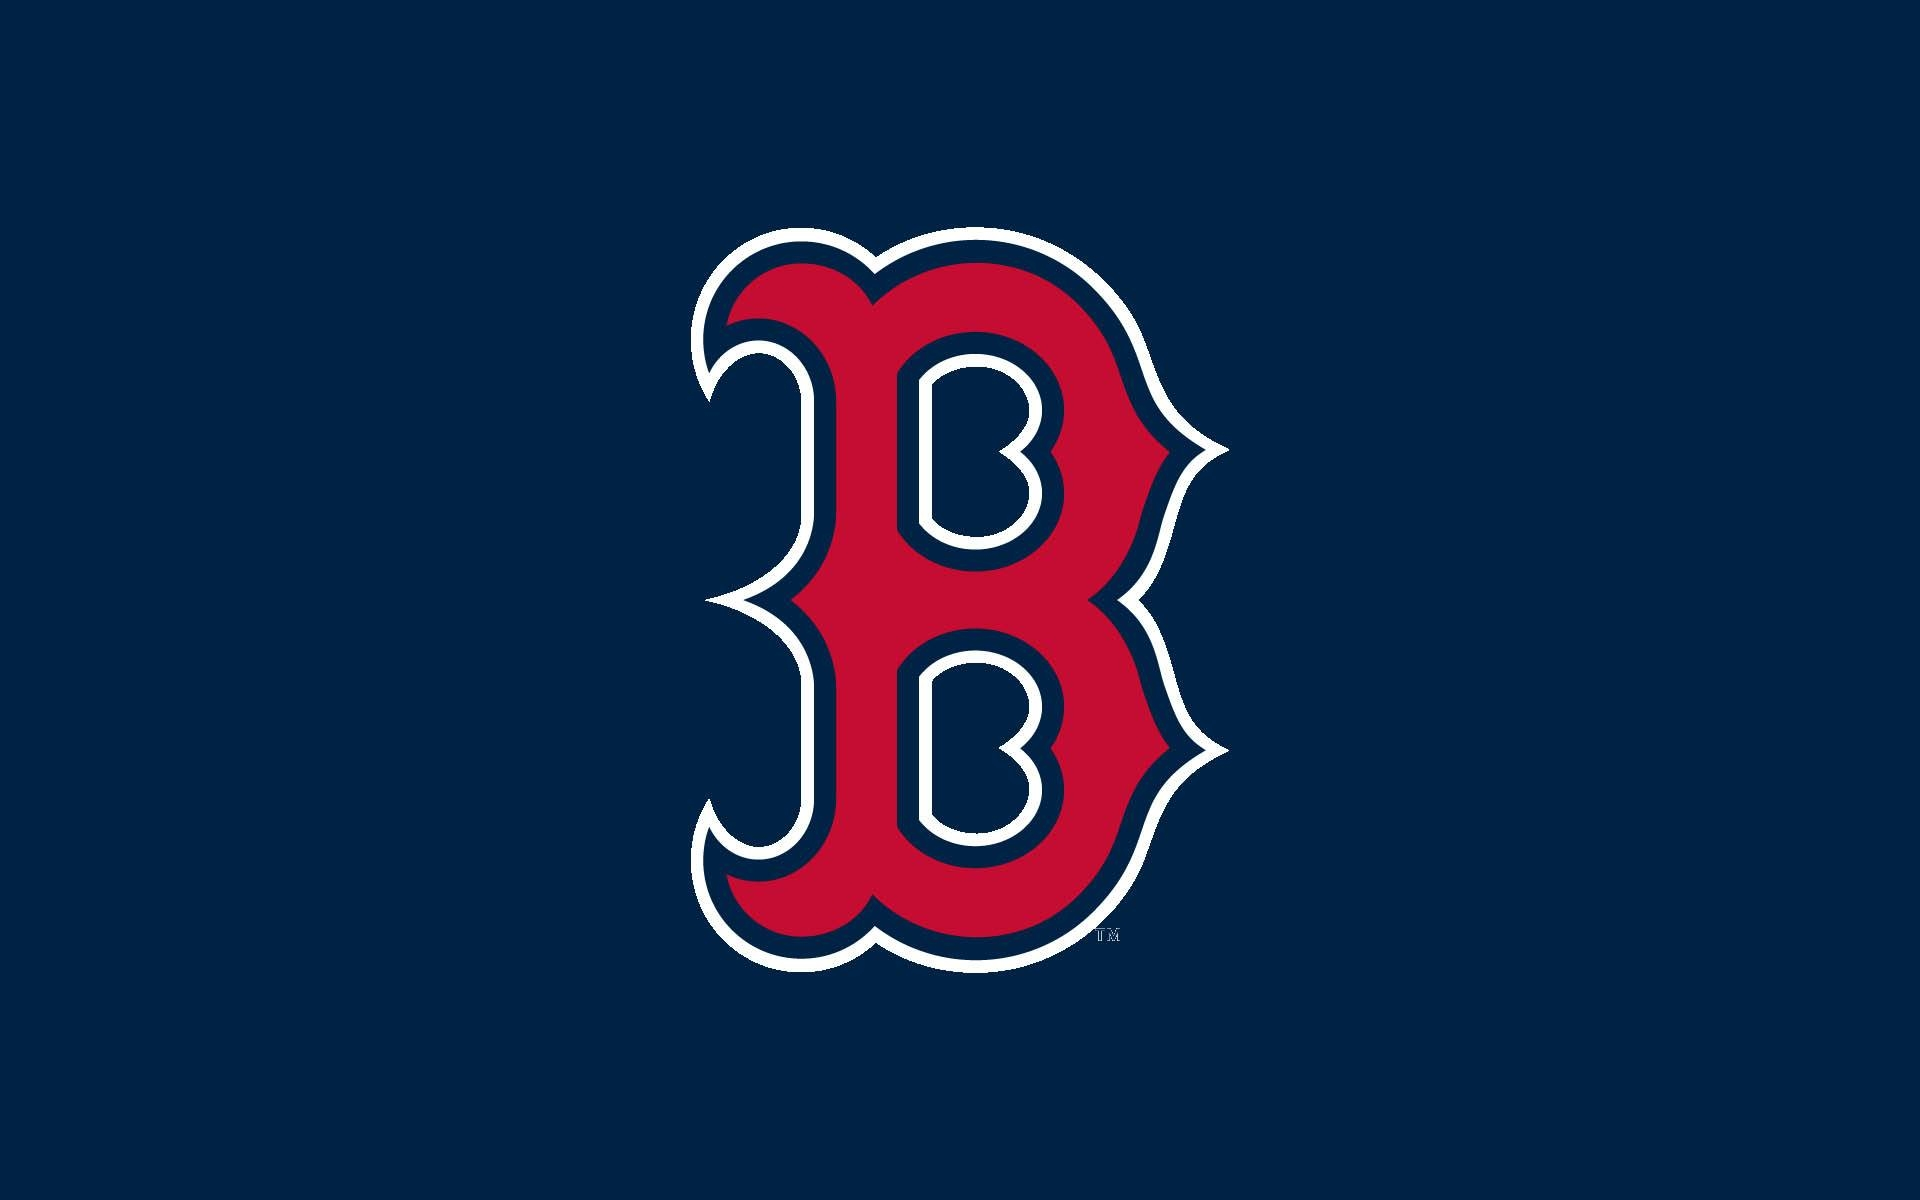 Boston Red Sox Logo Wallpaper | Free Download Clip Art | Free Clip Inside Recent Boston Red Sox Wall Art (View 7 of 25)